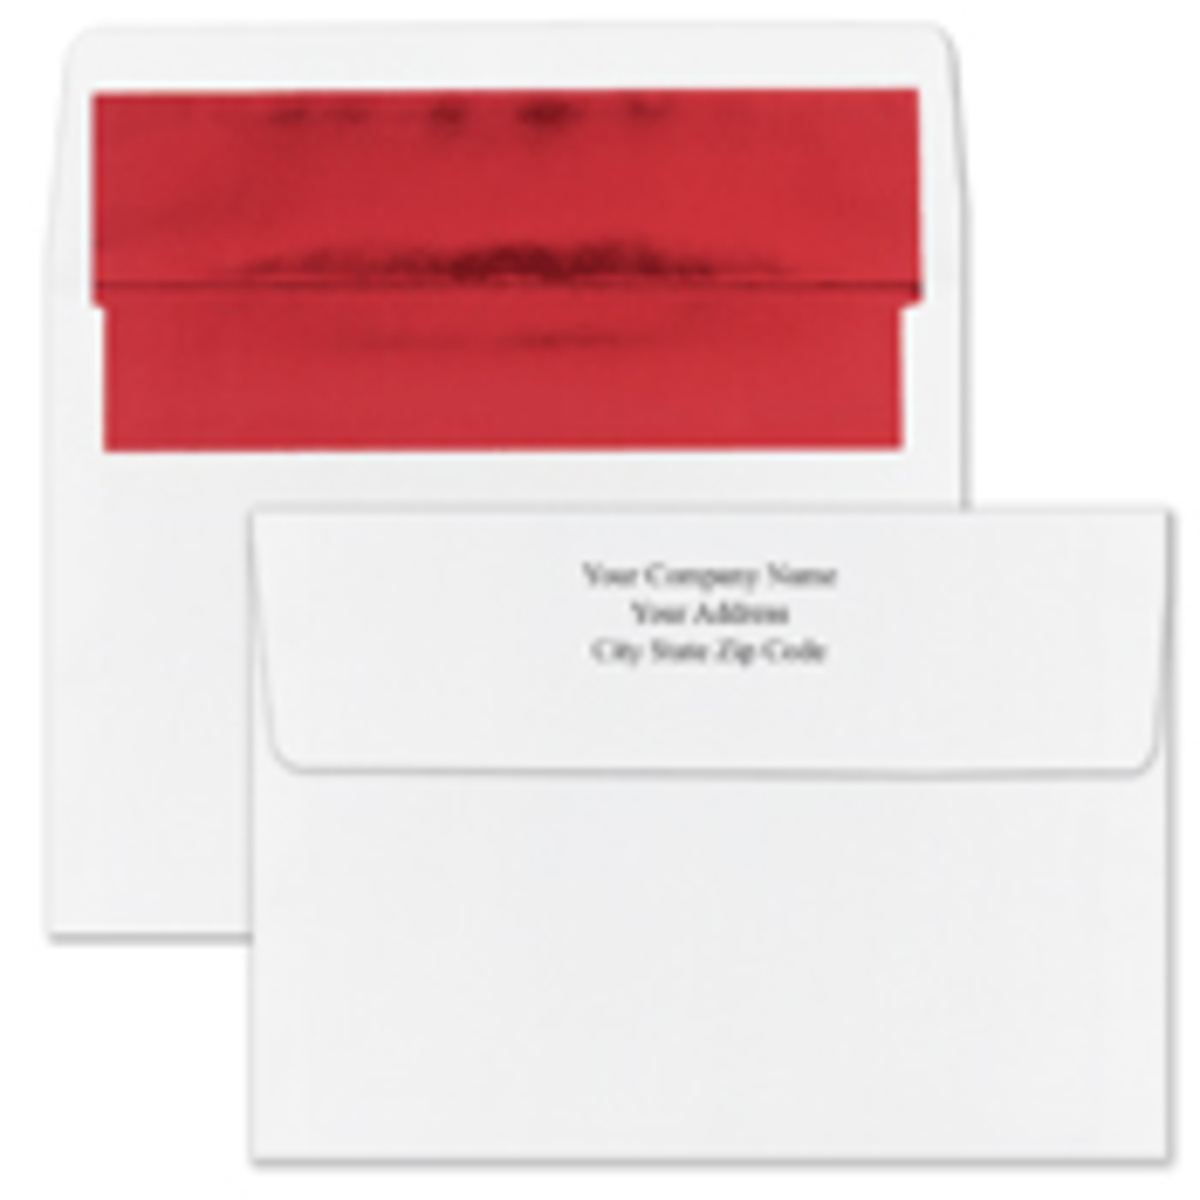 Recycled Red Foil Lined White Envelope - Printed